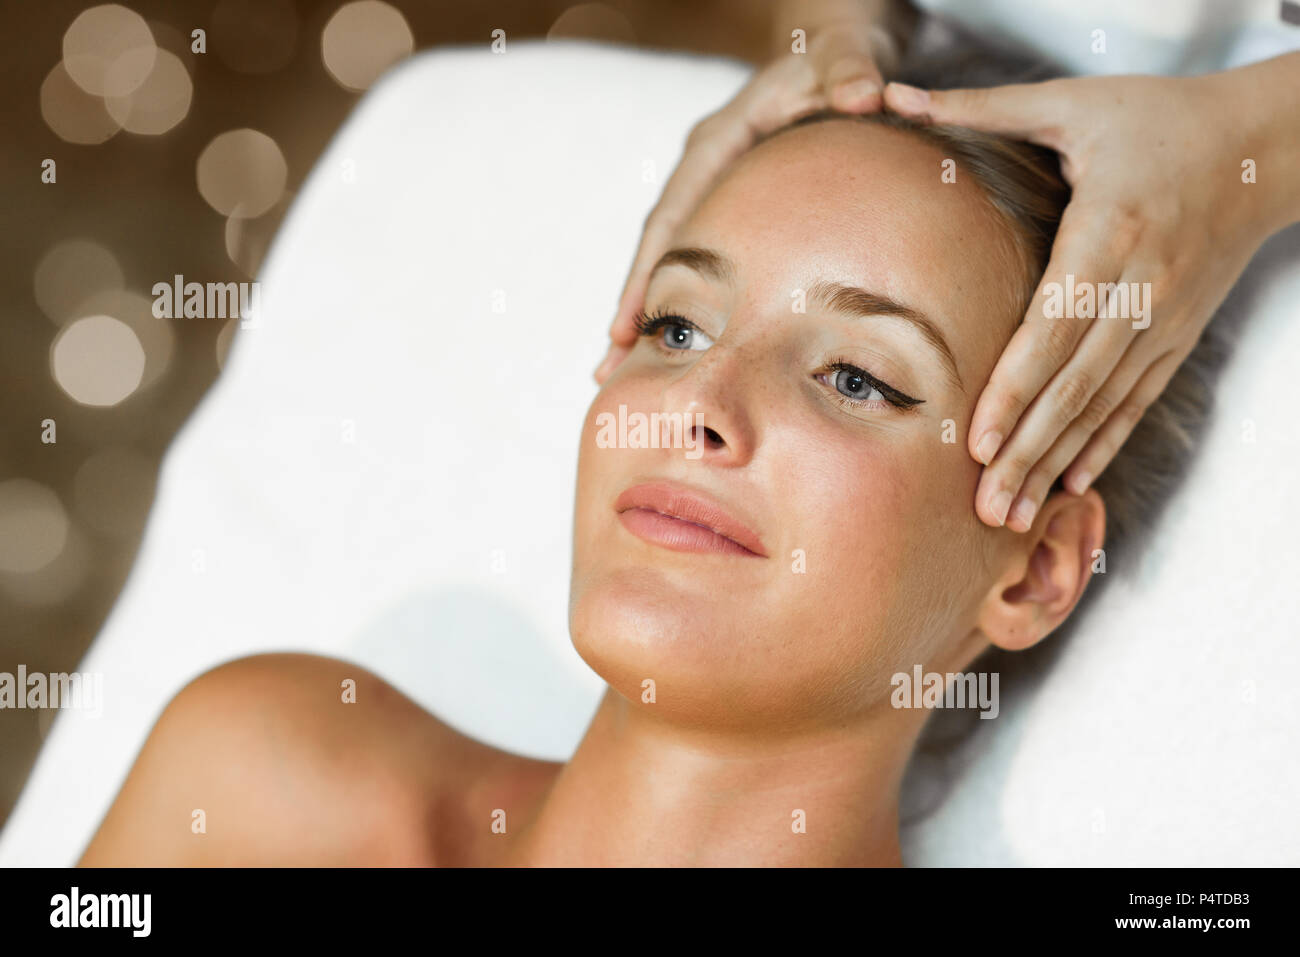 Young blond woman receiving a head massage in a spa center with blue eyes. Female patient is receiving treatment by professional therapist. - Stock Image